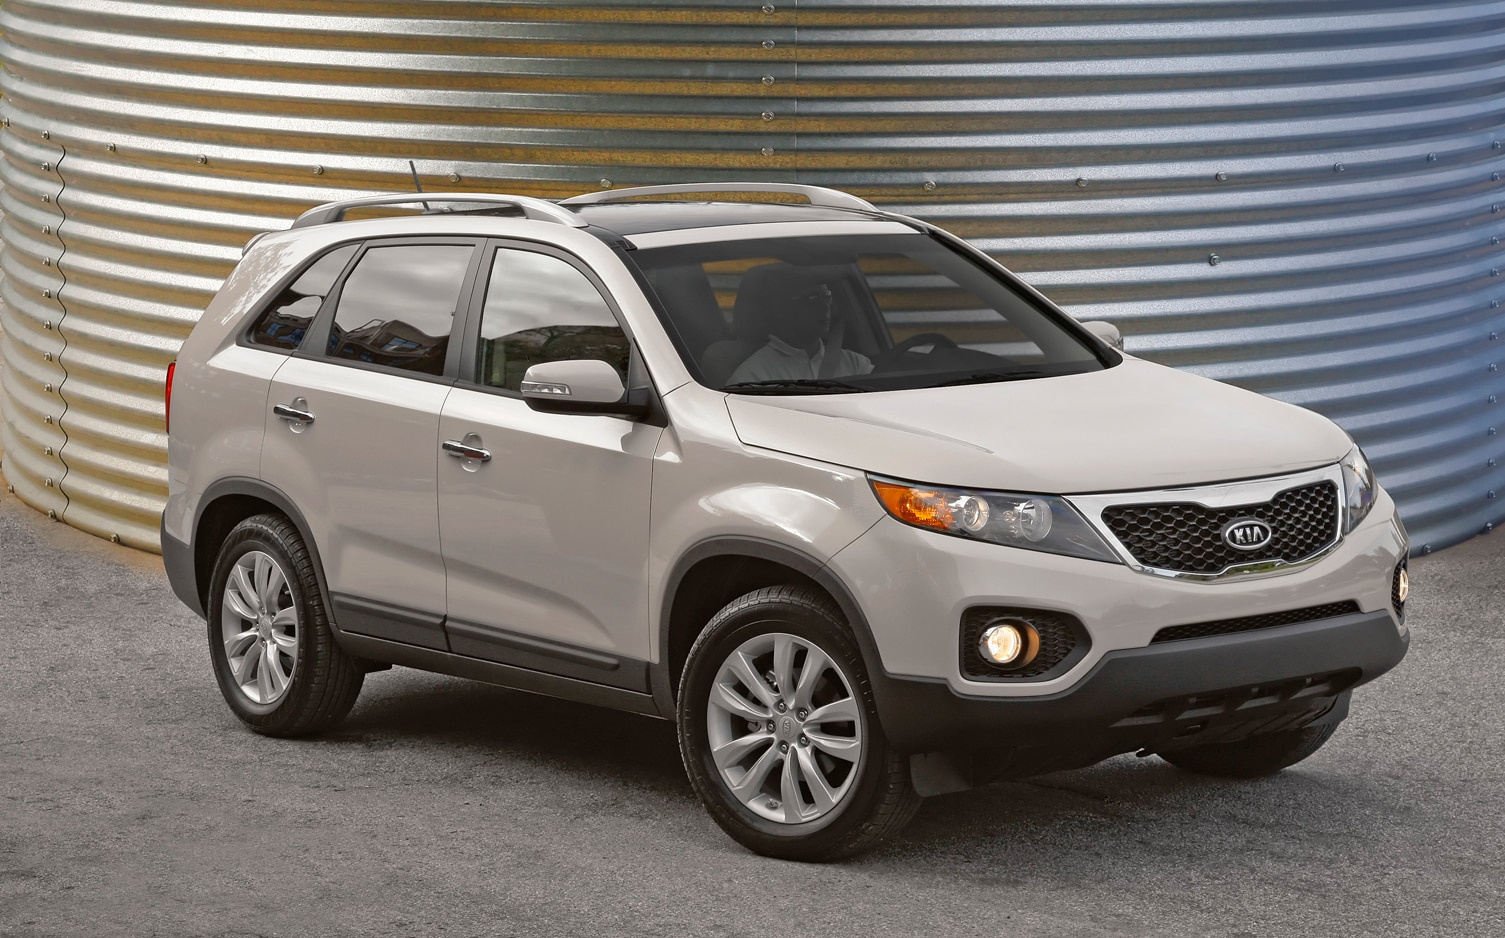 2012 Kia Sorento Front Right Side View 5